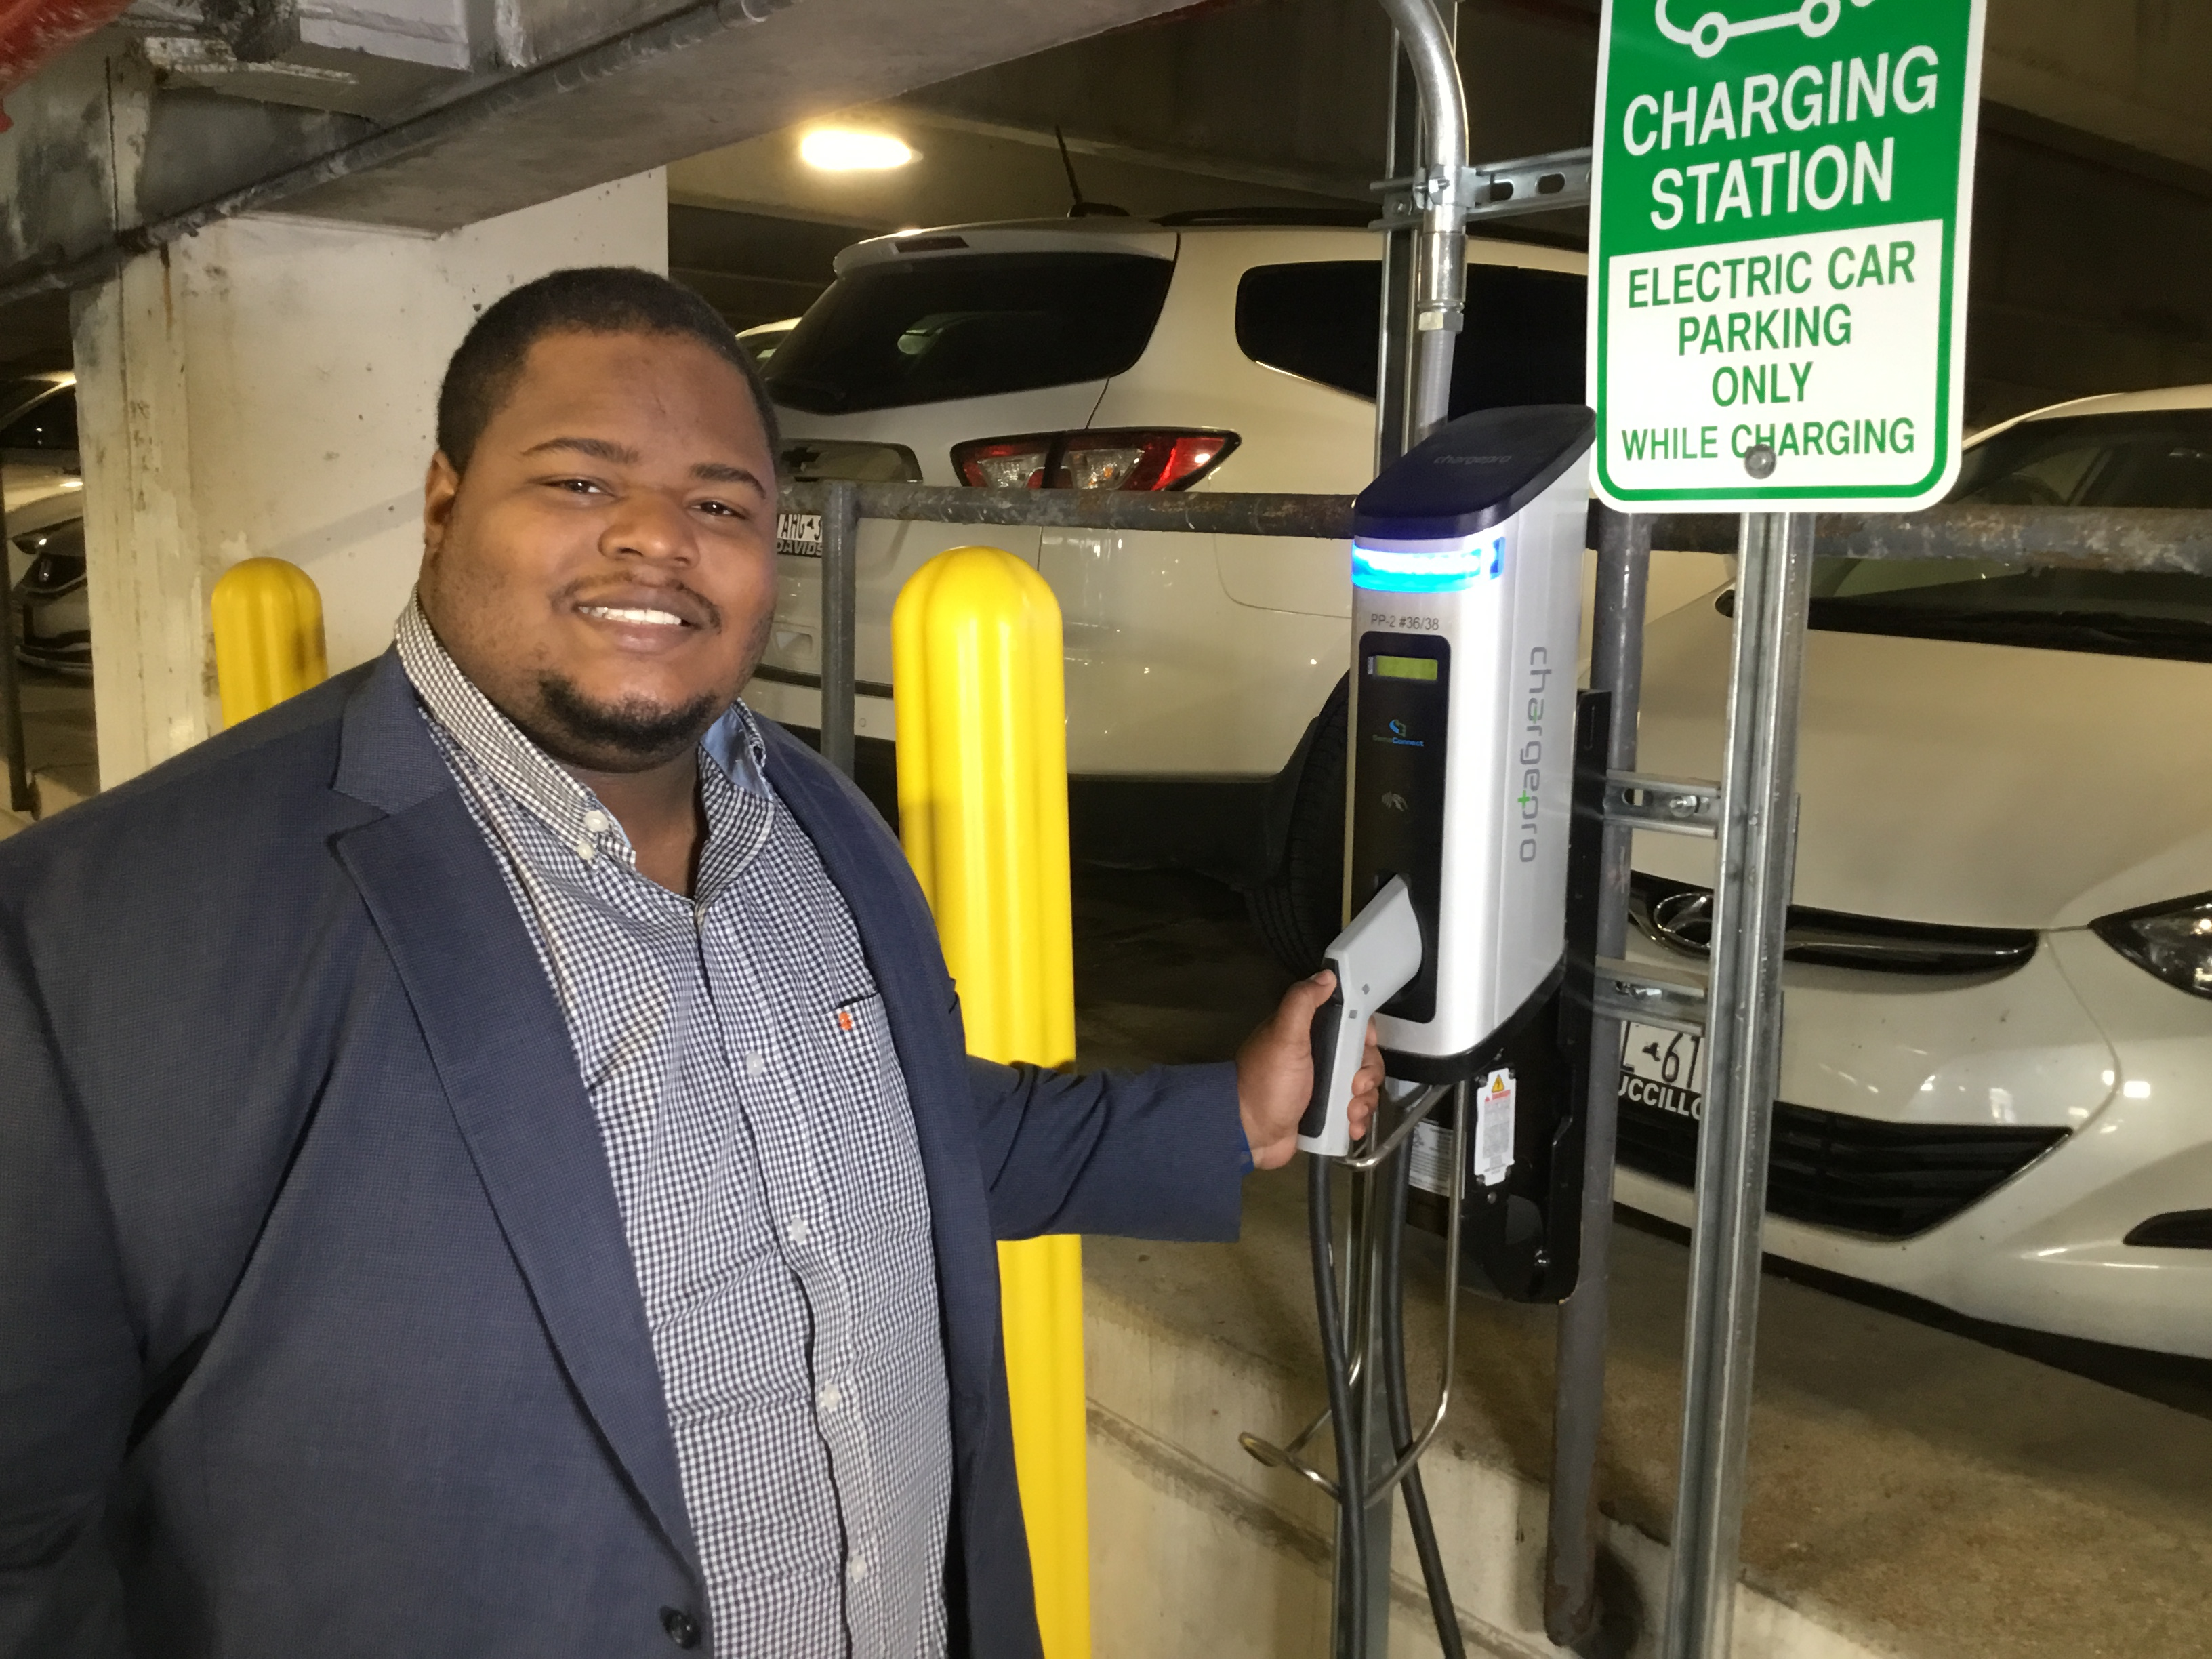 Josh Aviv '14 and a graduate student in the iSchool, stands next to the electric vehicle charger he donated to the University.